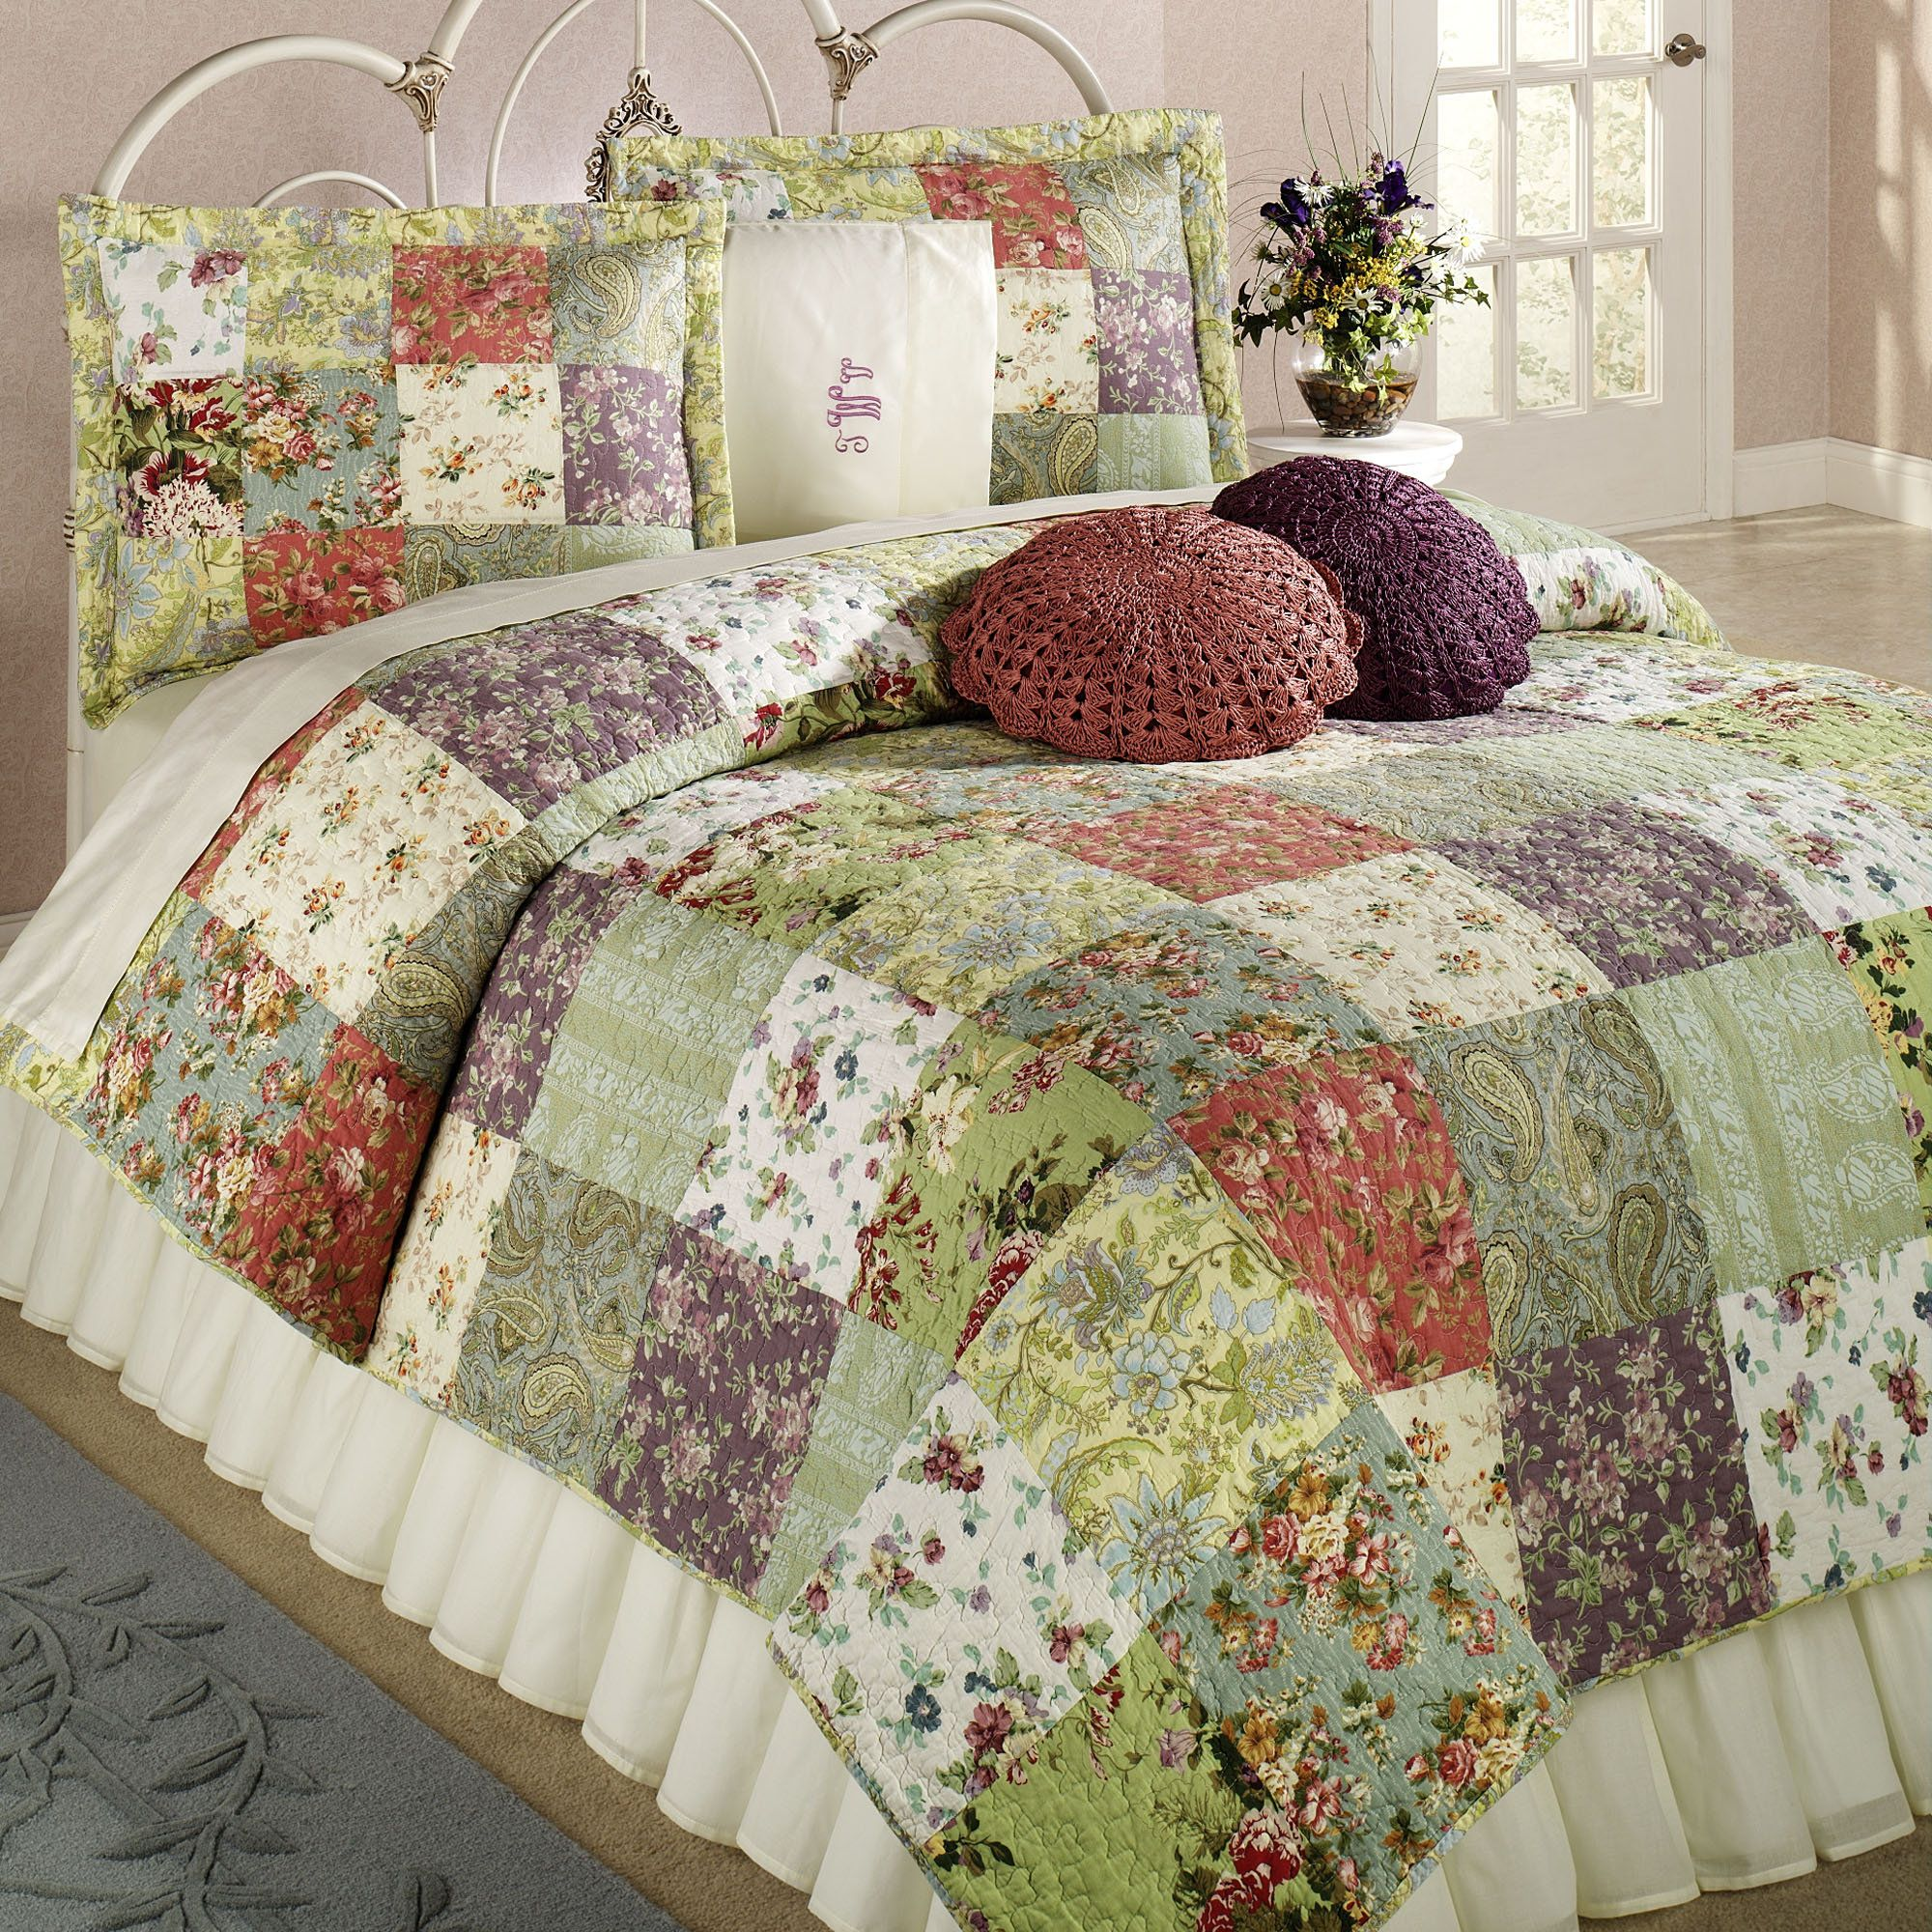 Patchwork bed sheets patterns - Blooming Prairie Cotton Patchwork Quilt Set Bedding